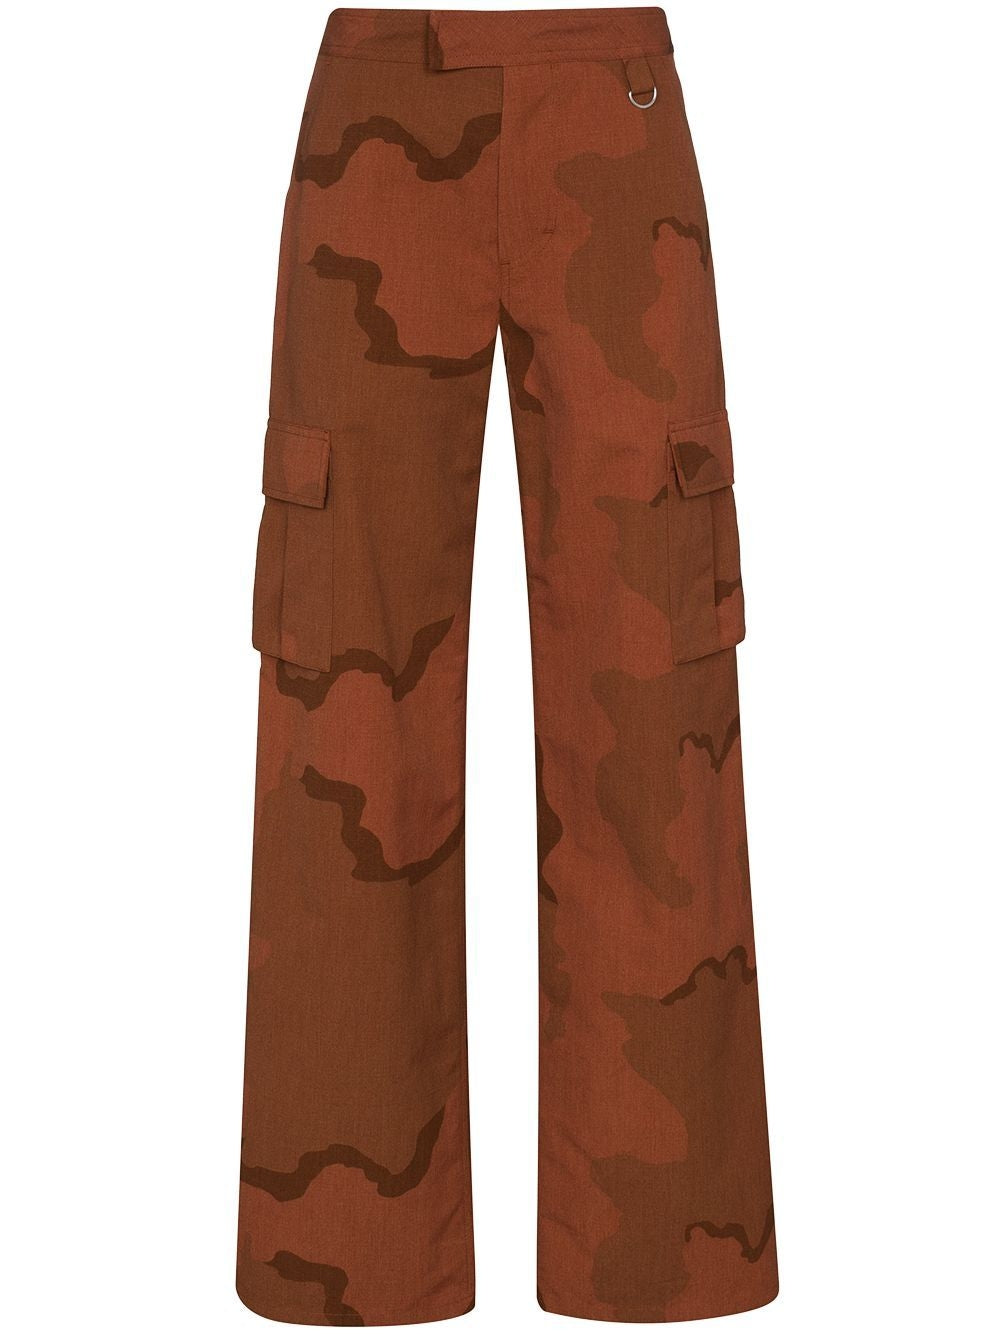 Brown Regenerated Military Pants